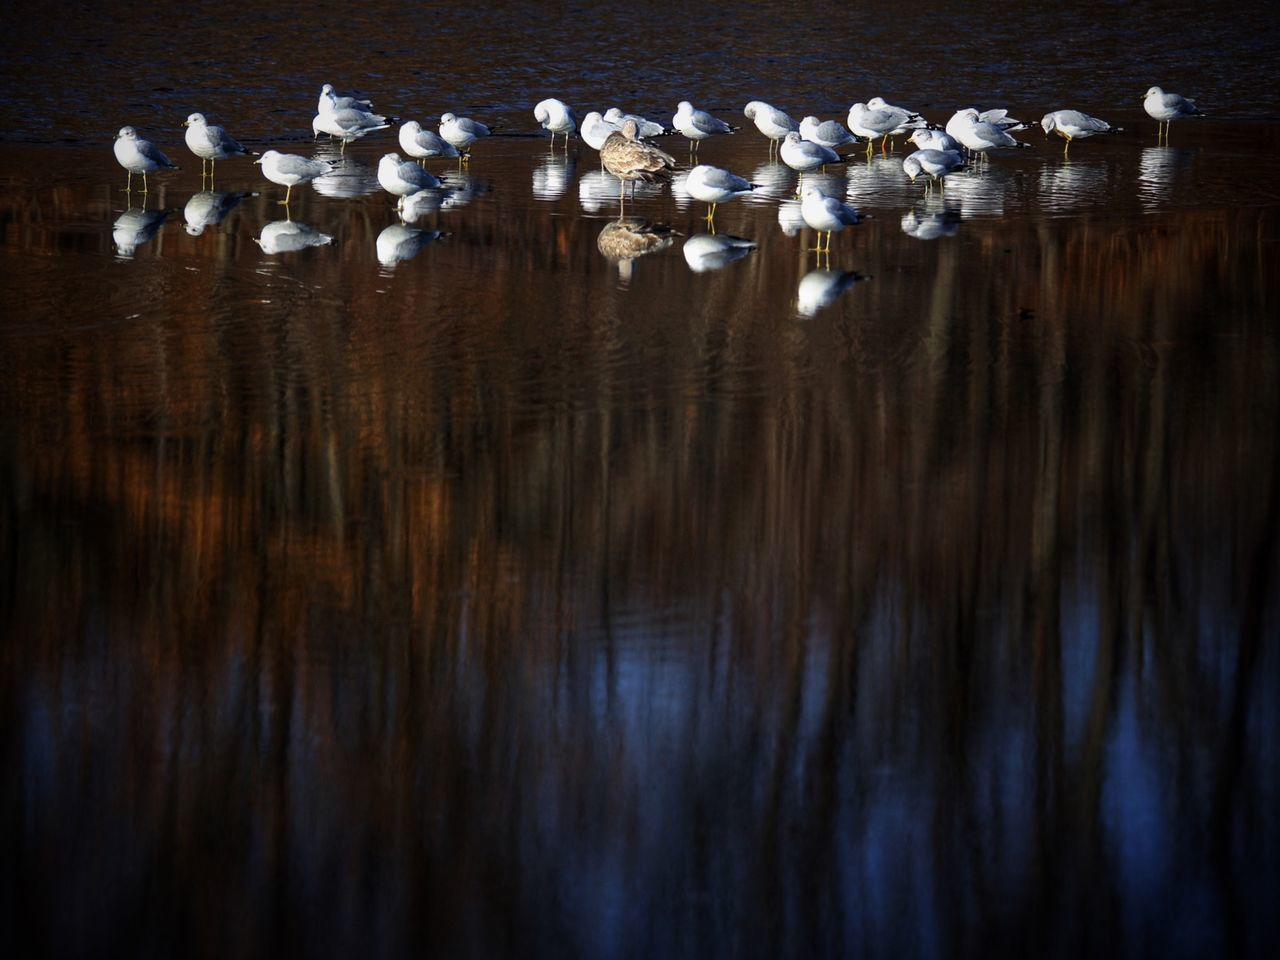 reflection, water, no people, bird, group of animals, animal wildlife, large group of animals, nature, animals in the wild, lake, animal themes, day, vertebrate, tranquility, animal, beauty in nature, high angle view, outdoors, waterfront, flock of birds, floating on water